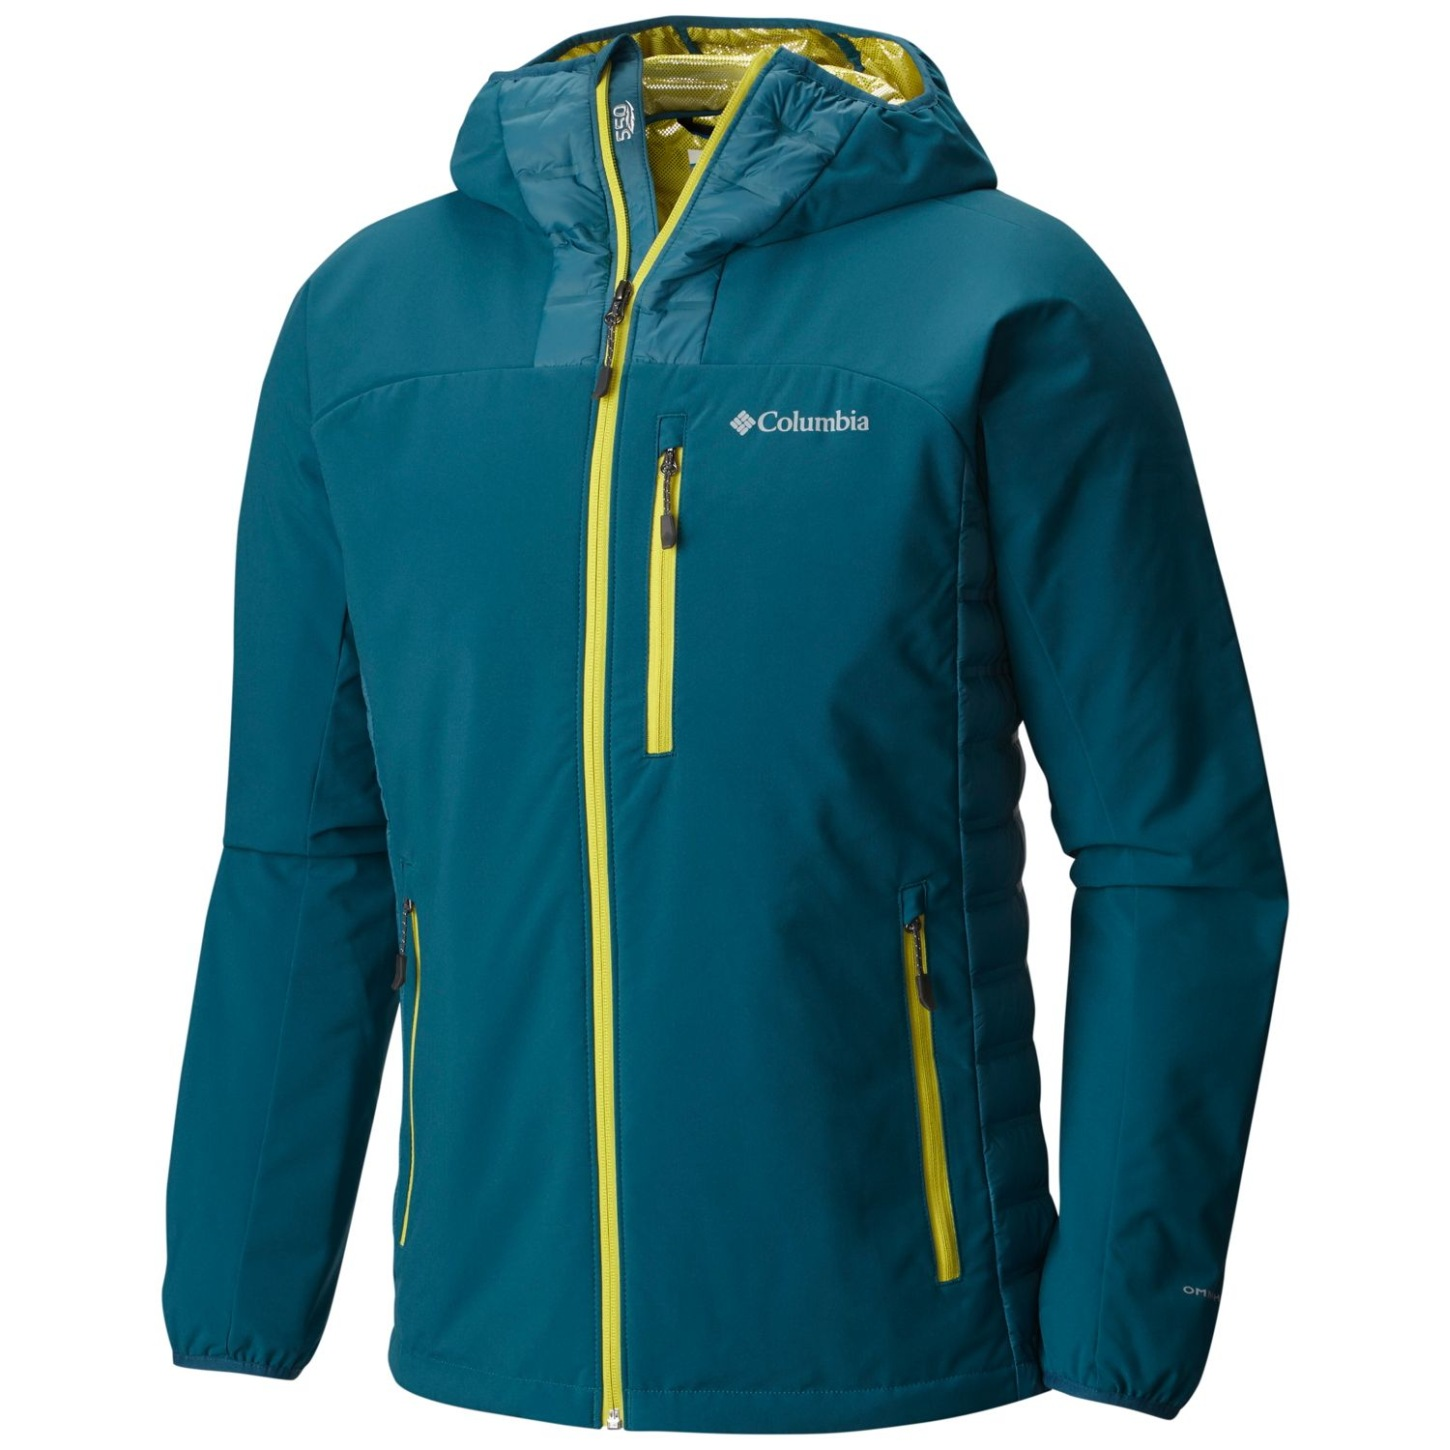 Columbia Hybrid-Jacke Dutch Hollow für Männer Deep Water-30